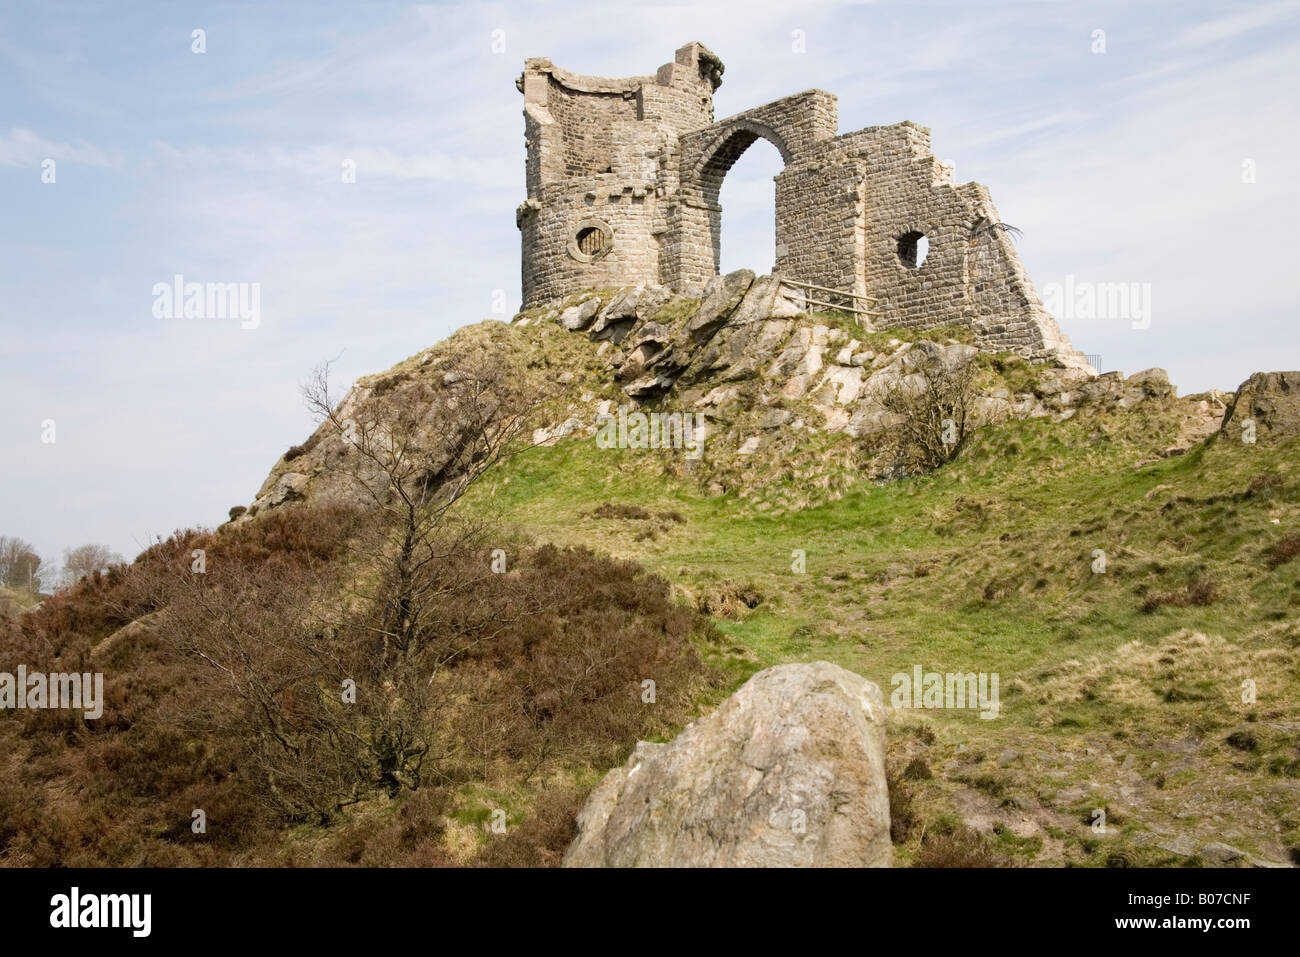 Cheshire England April The mock ruins of Mow Cop Castle